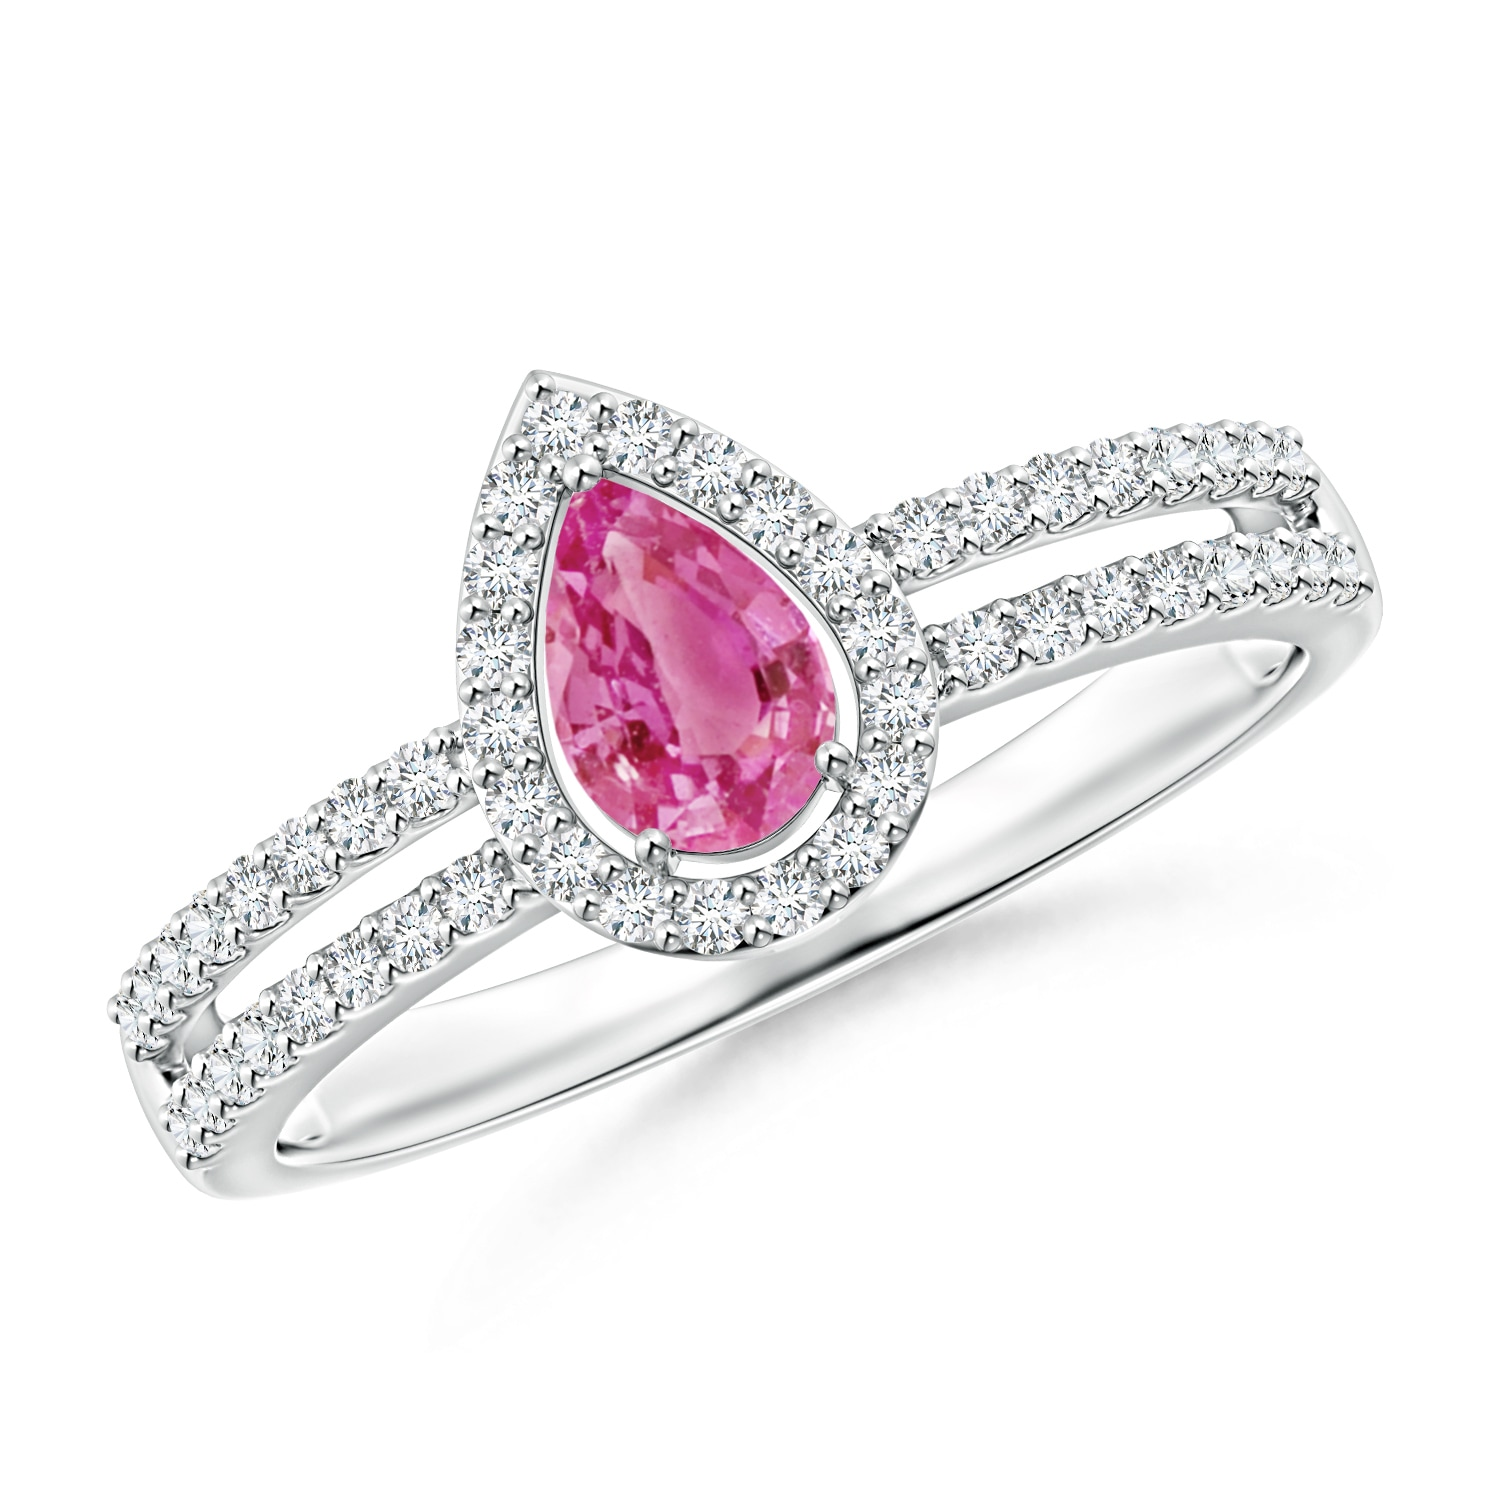 Angara Pink Sapphire Engagement Ring in Yellow Gold kUxL3btrBf